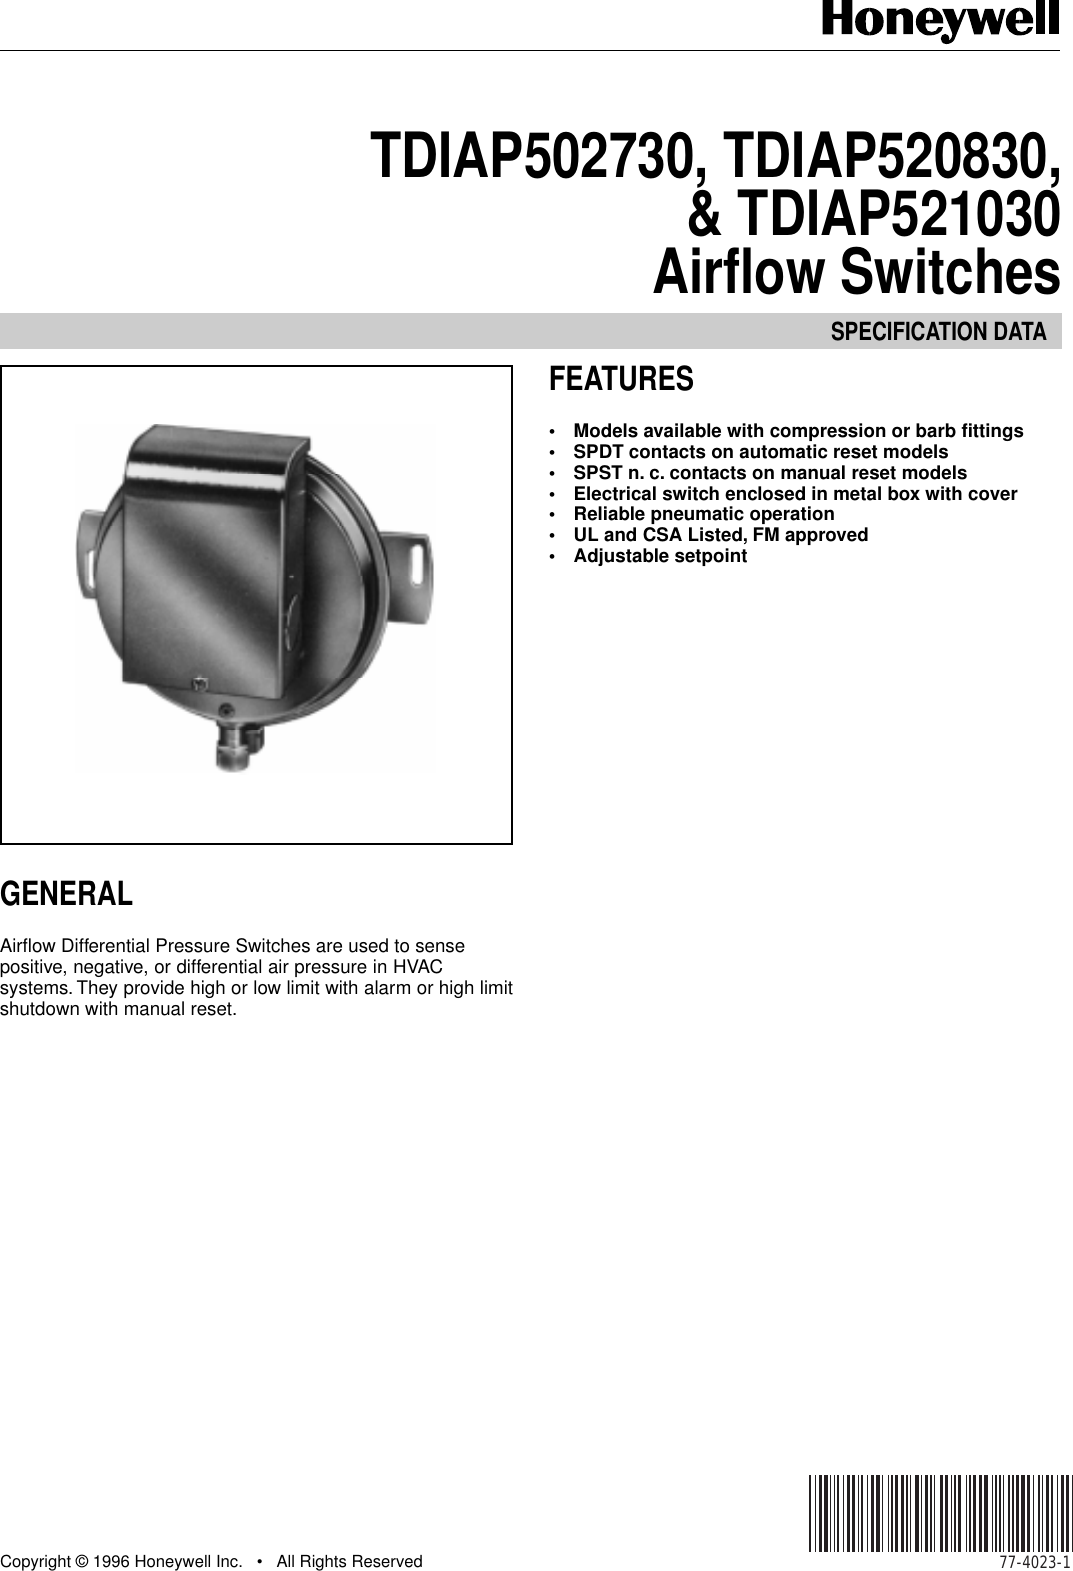 honeywell automobile parts tdiap502730 users manual 77 4023 rh usermanual wiki automotive user manual automobile user manuals